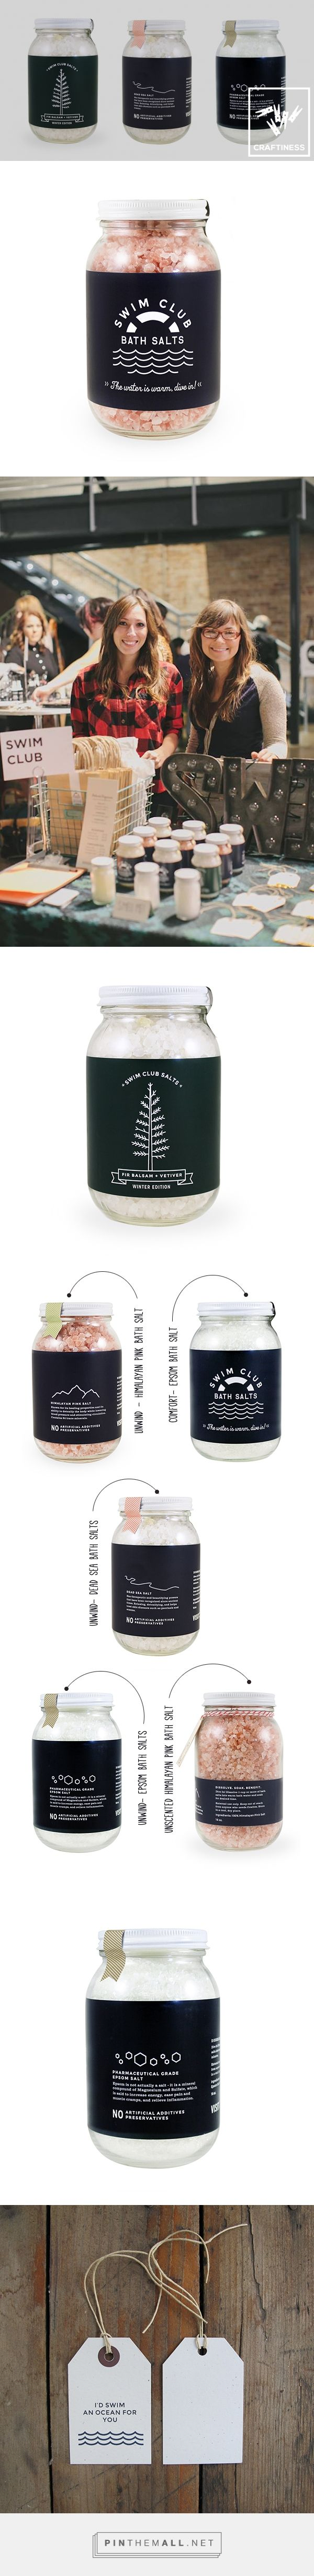 Sooth Your Soul with Swim Club Bath Salts via IAMTHELAB curated by Packaging Diva PD. Handmade bath salts on clever packaging.